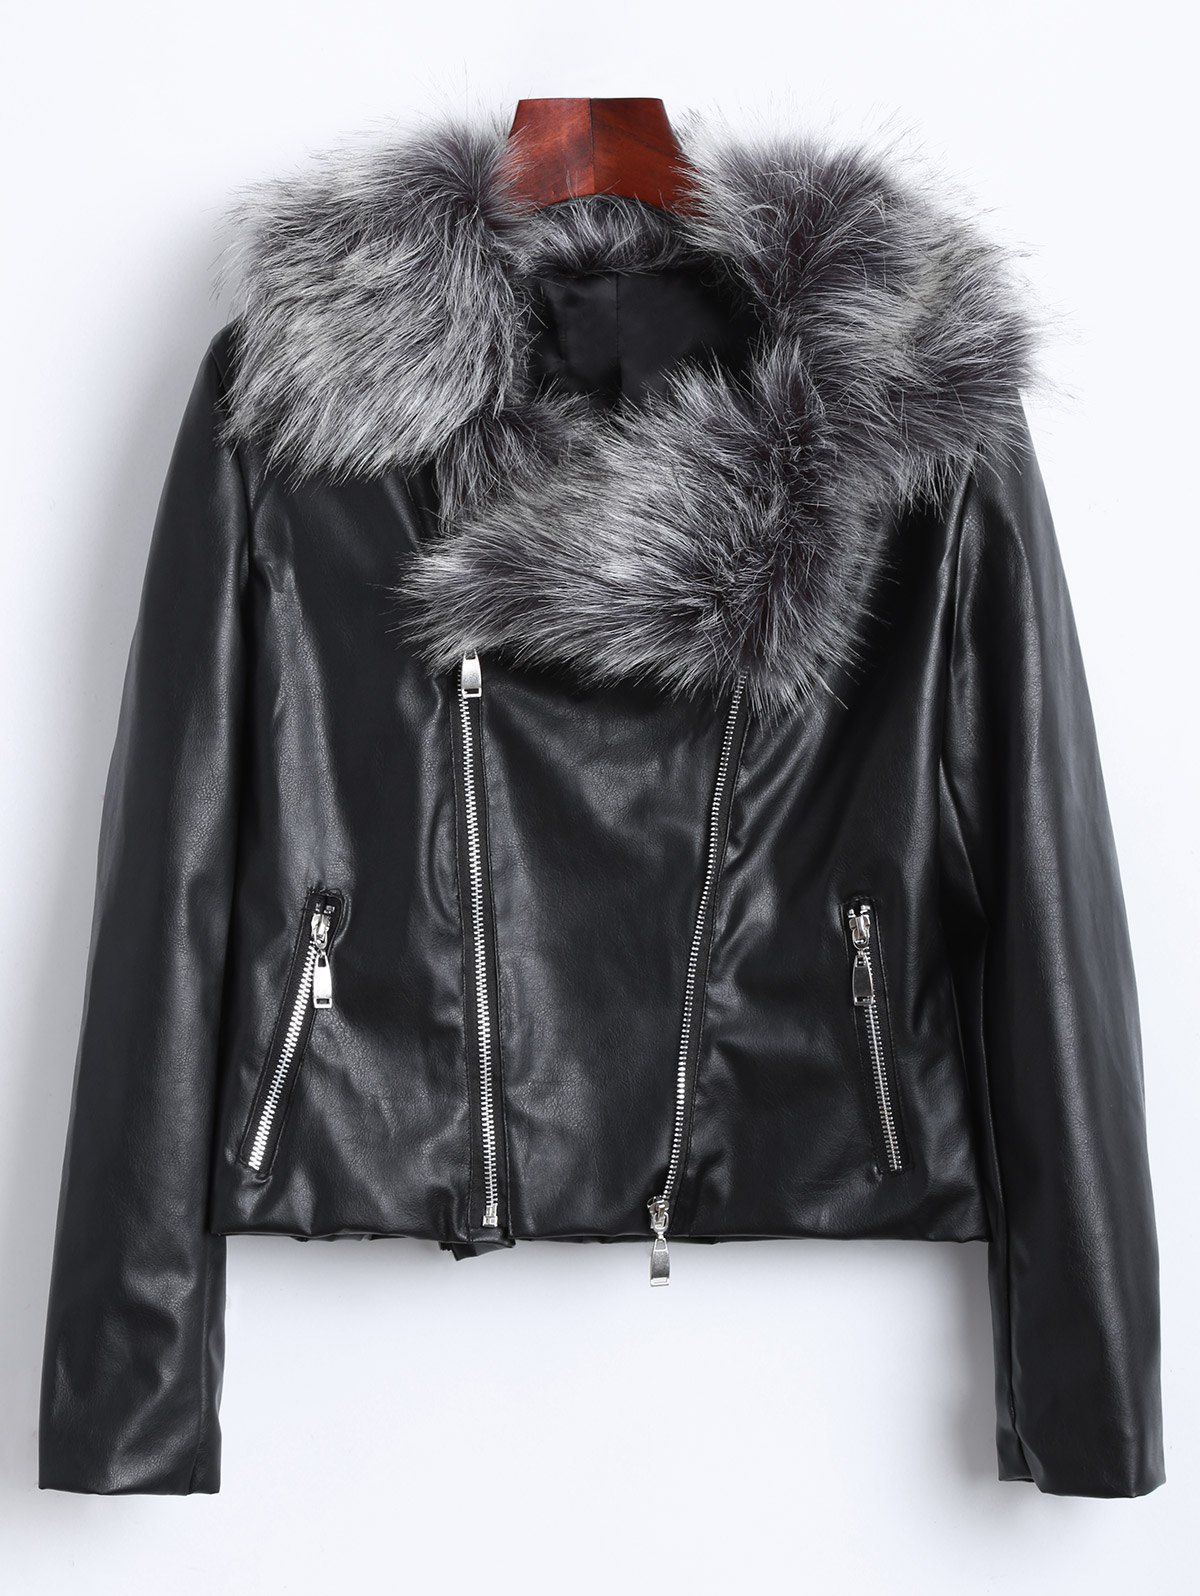 Zippers Faux Leather Biker Jacket with Fur Collar cropped leather biker jacket with tassel details